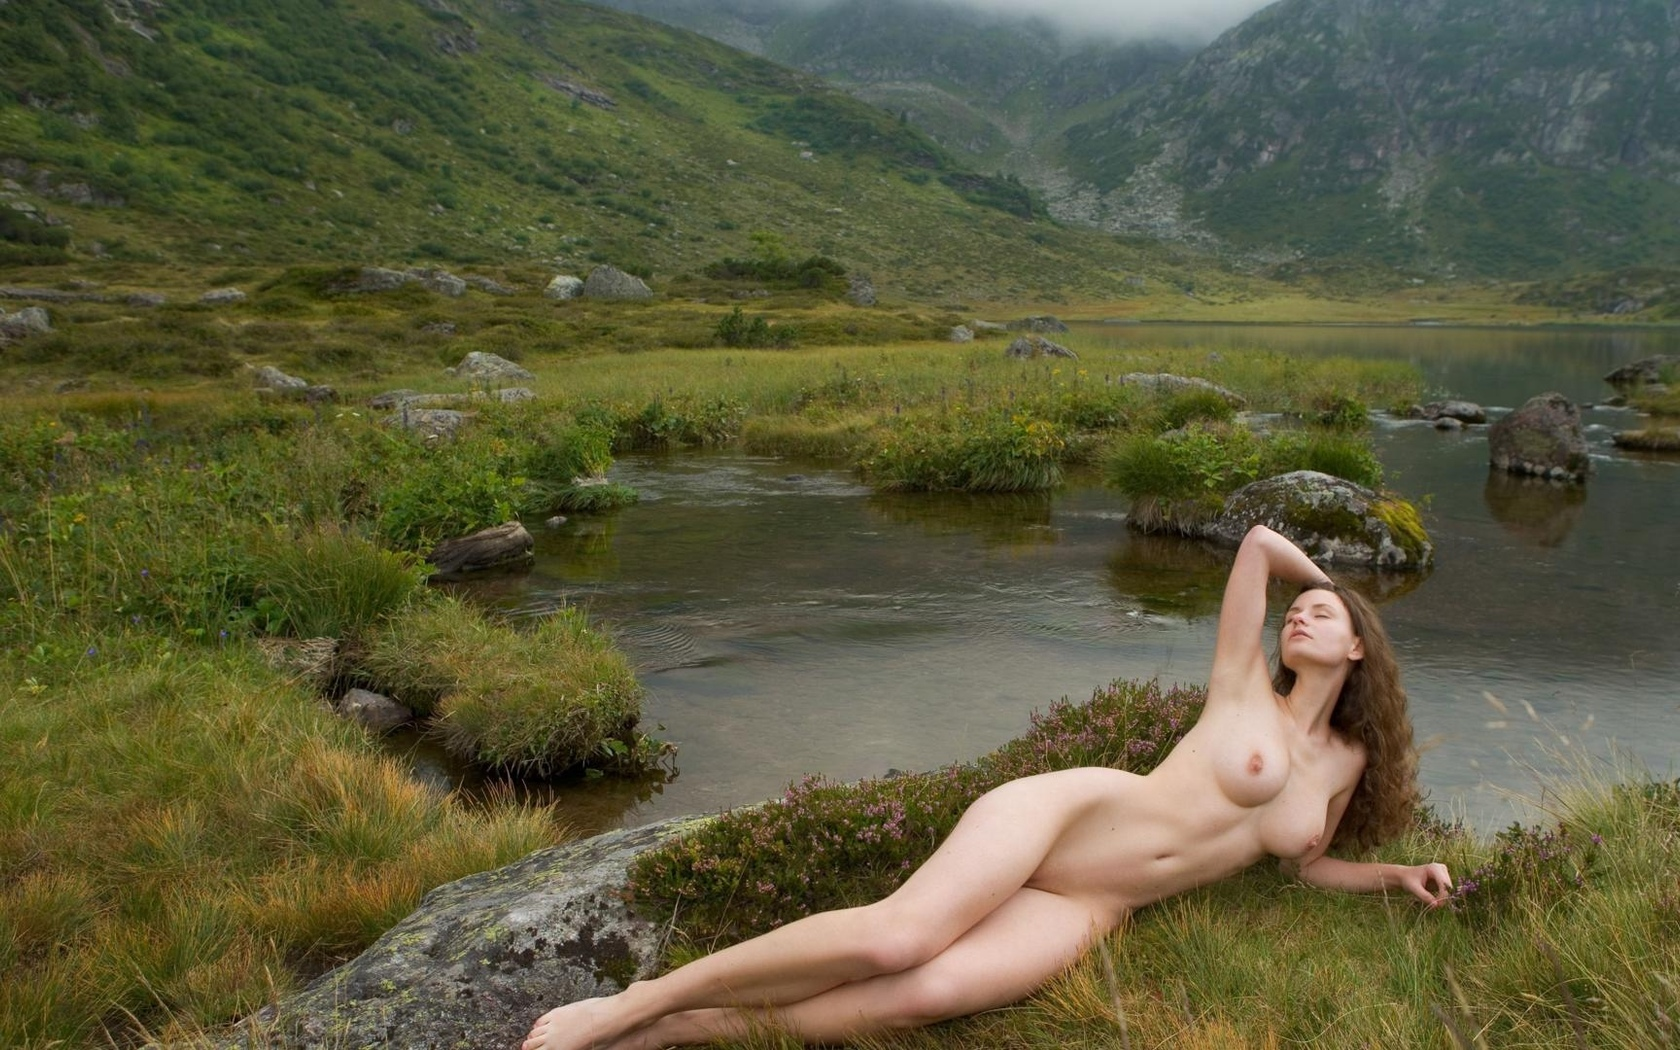 vasquez-ass-nude-photos-of-norwegian-women